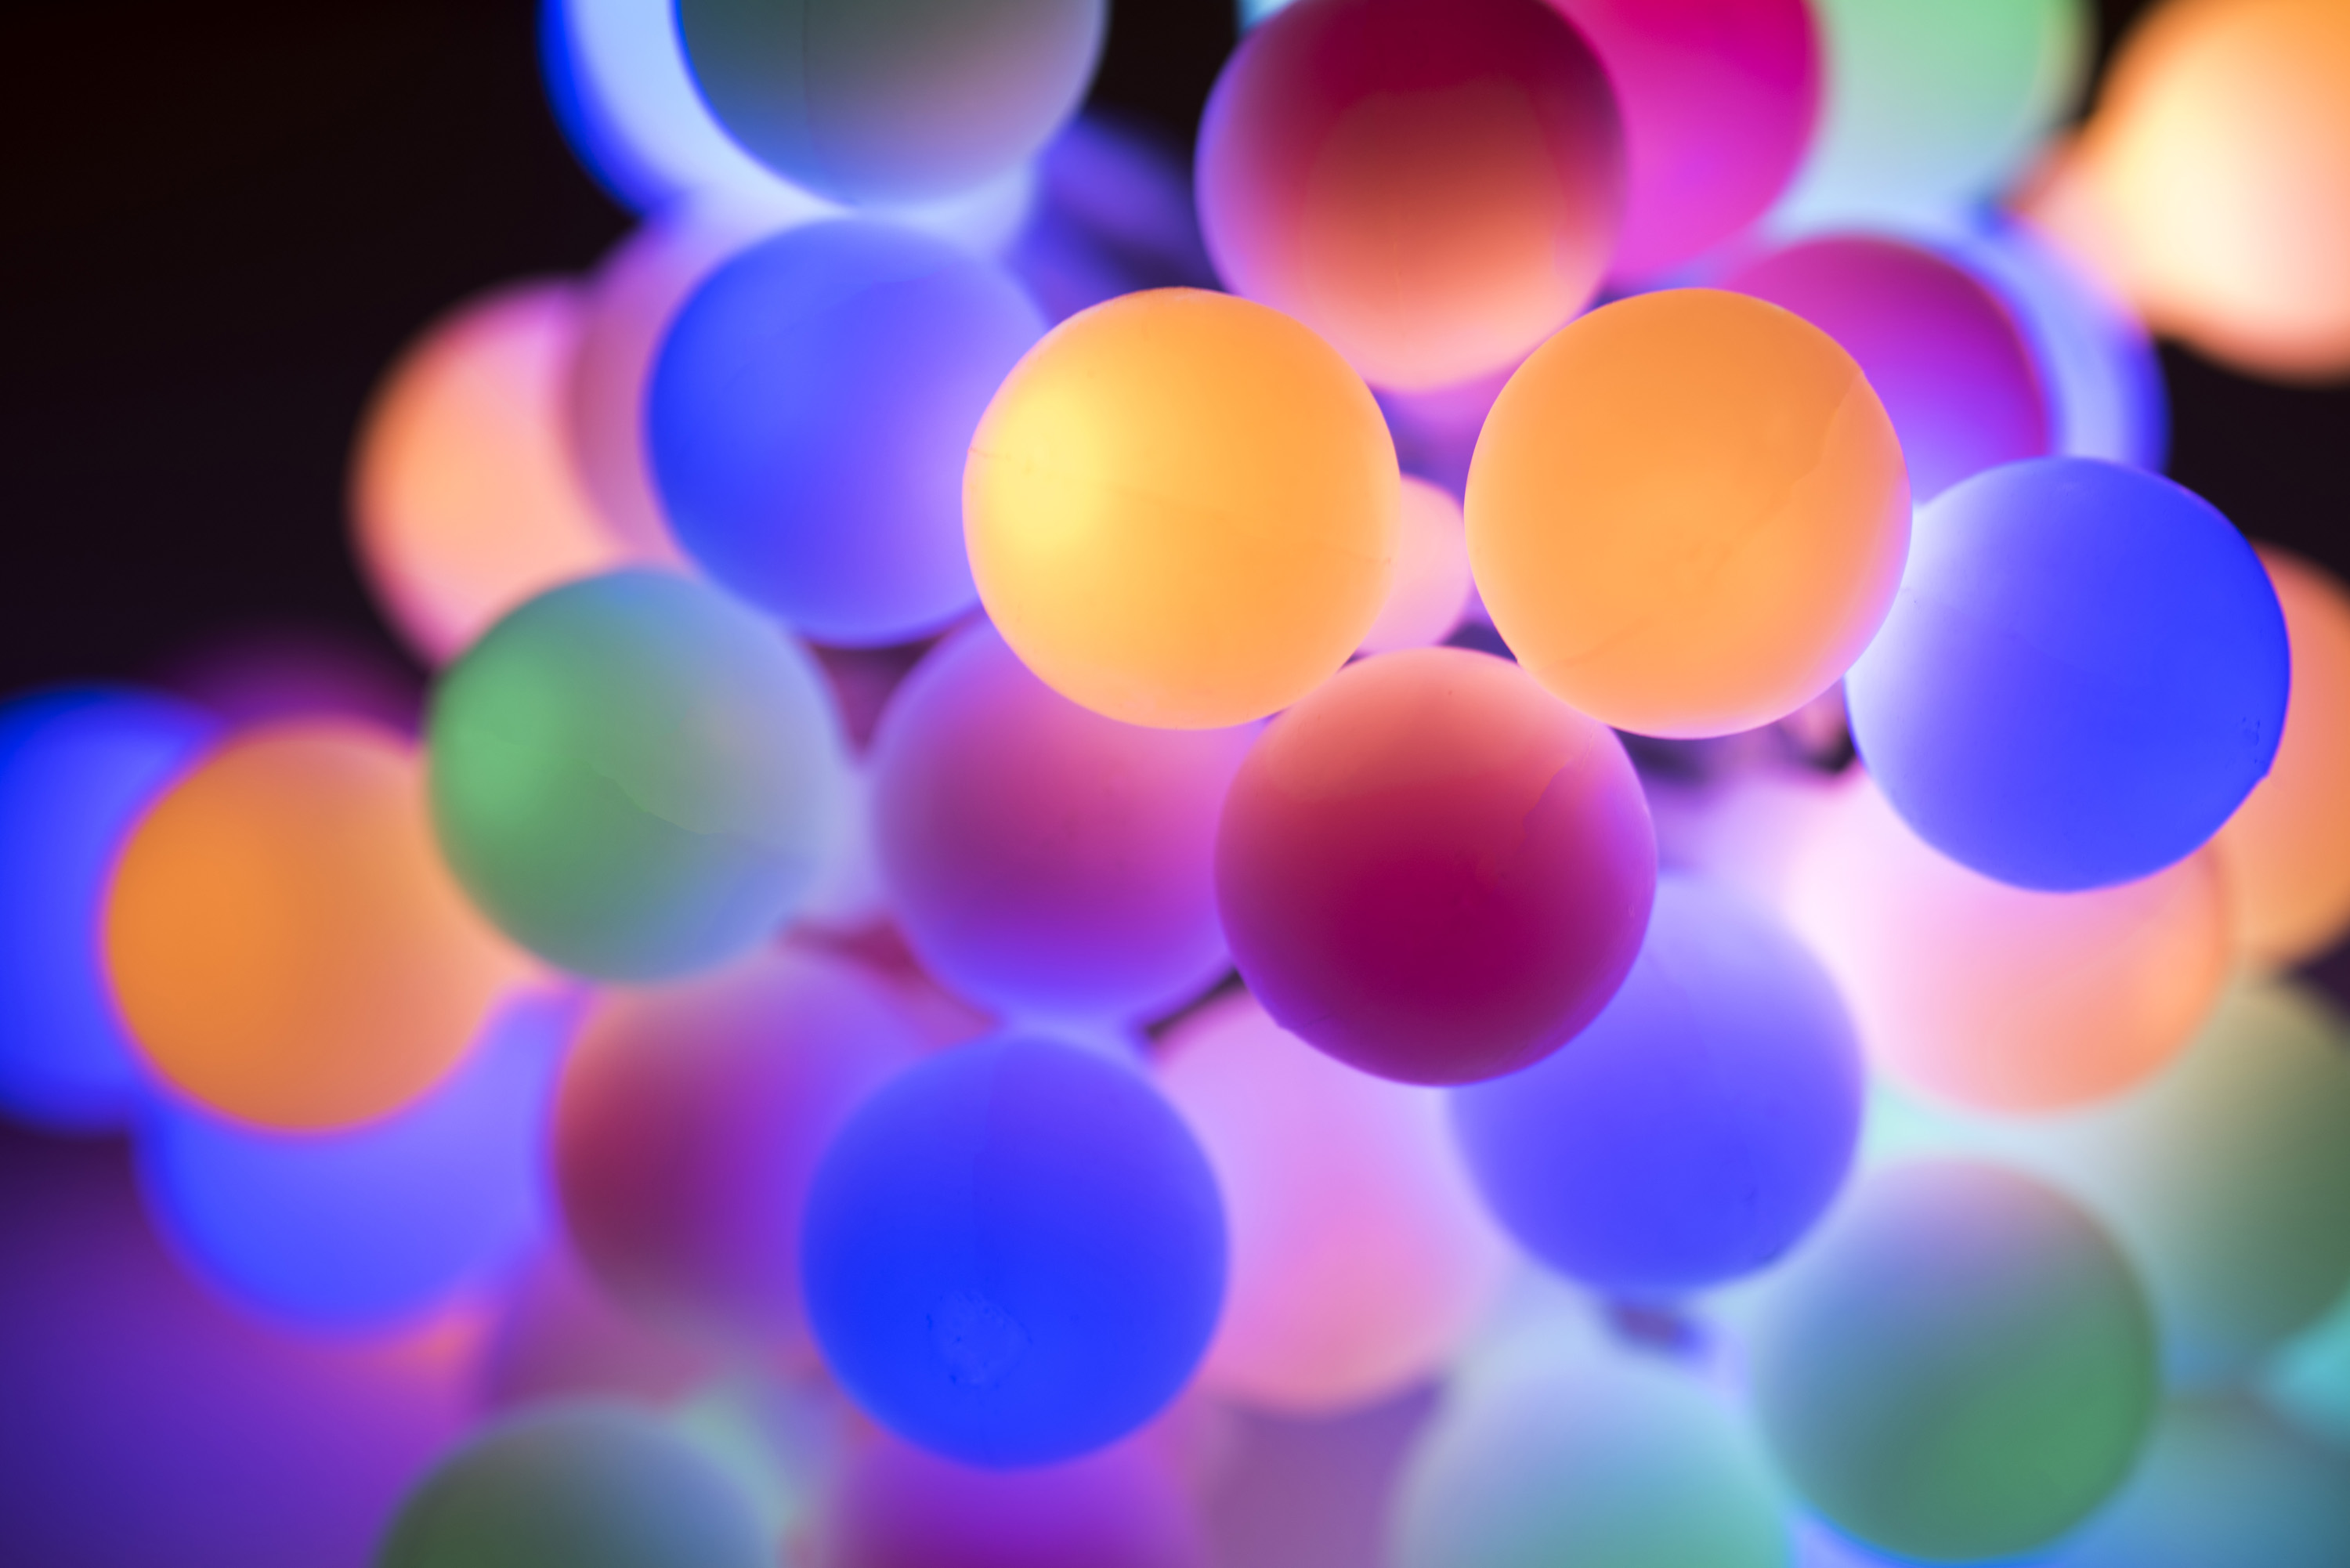 Abstract and defocused background composed of round glowing christmas lights